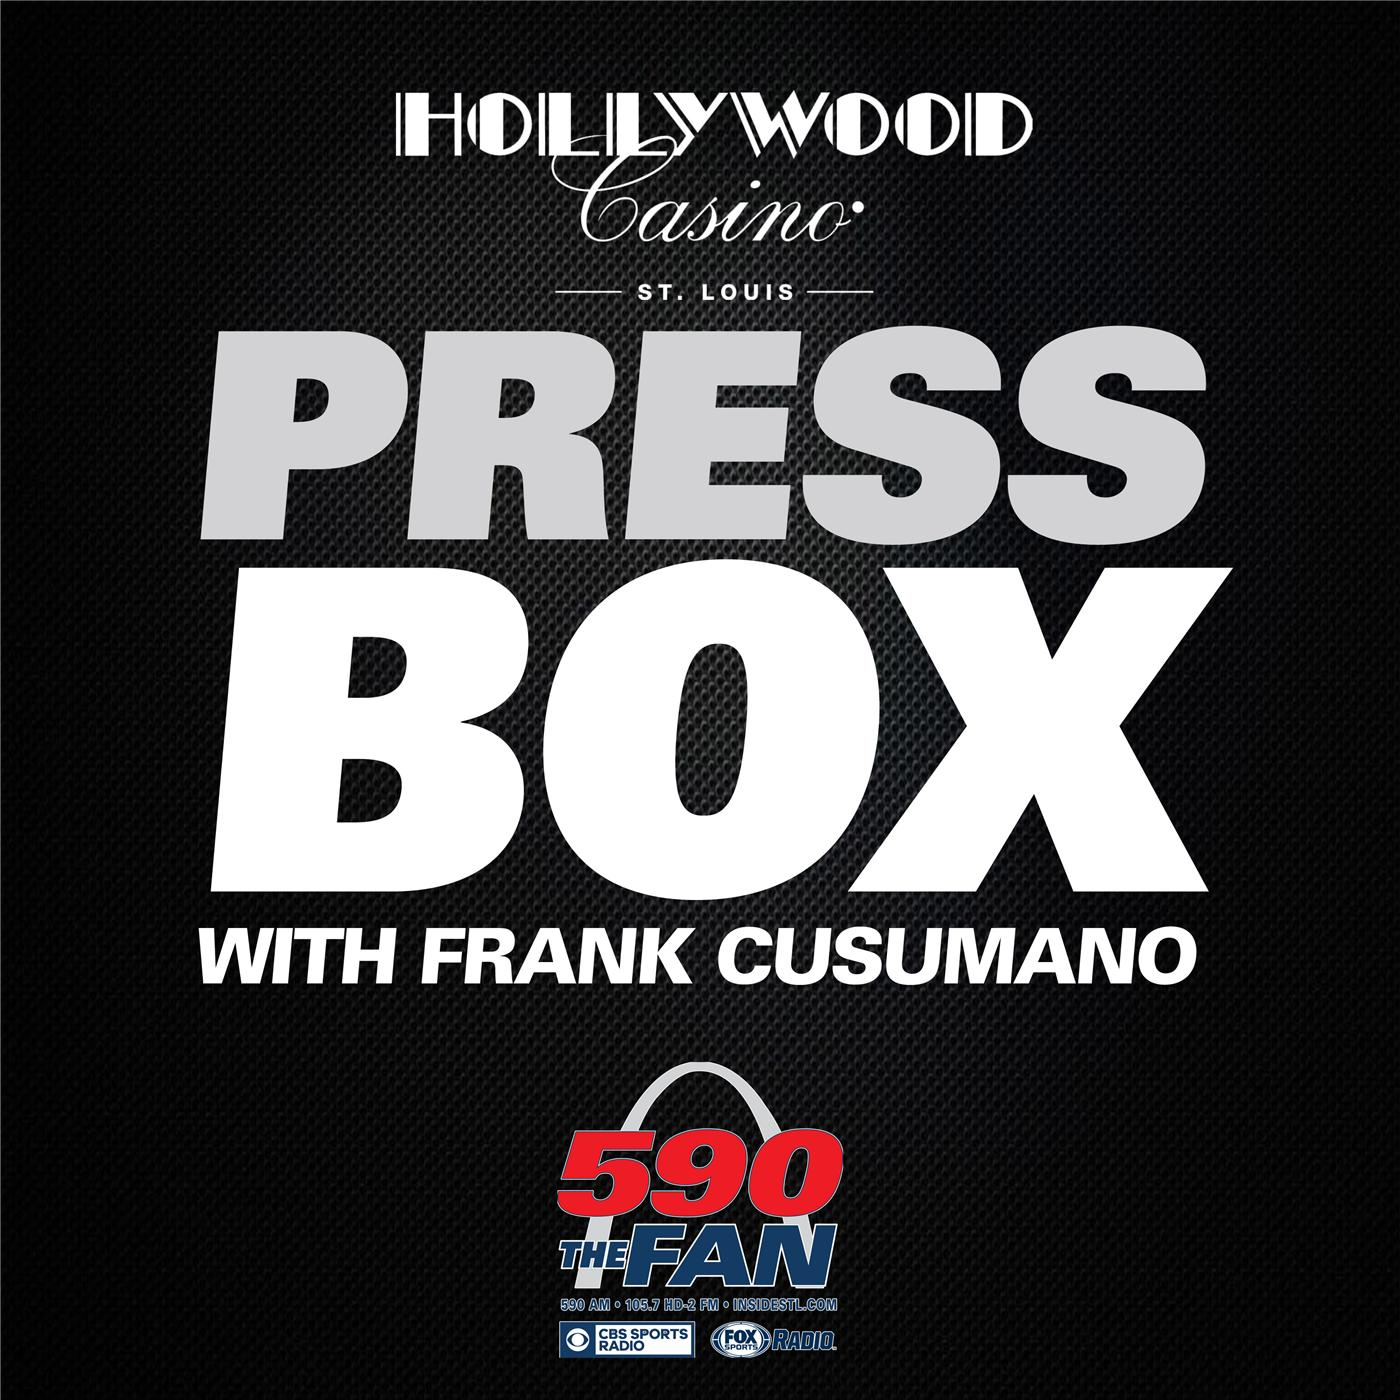 The Press Box with Frank Cusumano